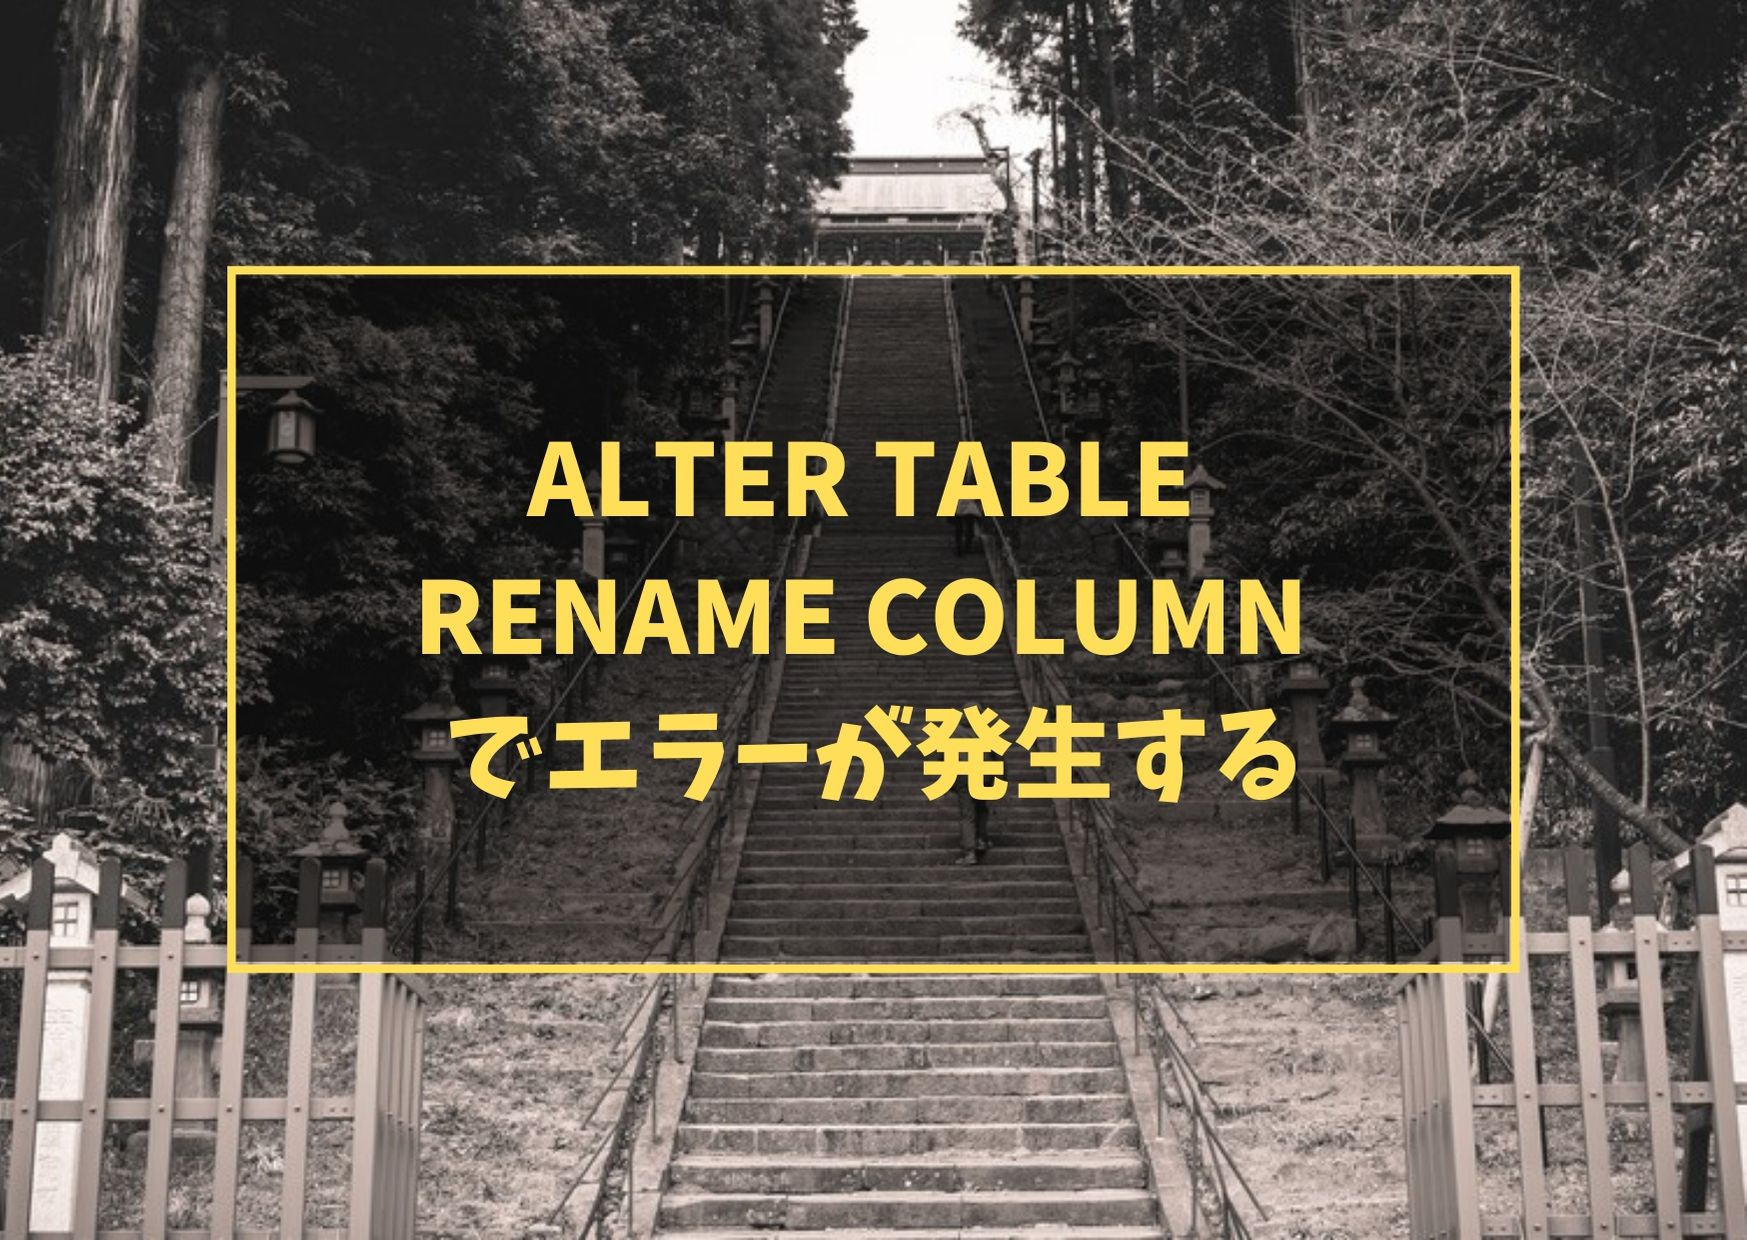 ALTER TABLE RENAME COLUMN でエラーが発生する